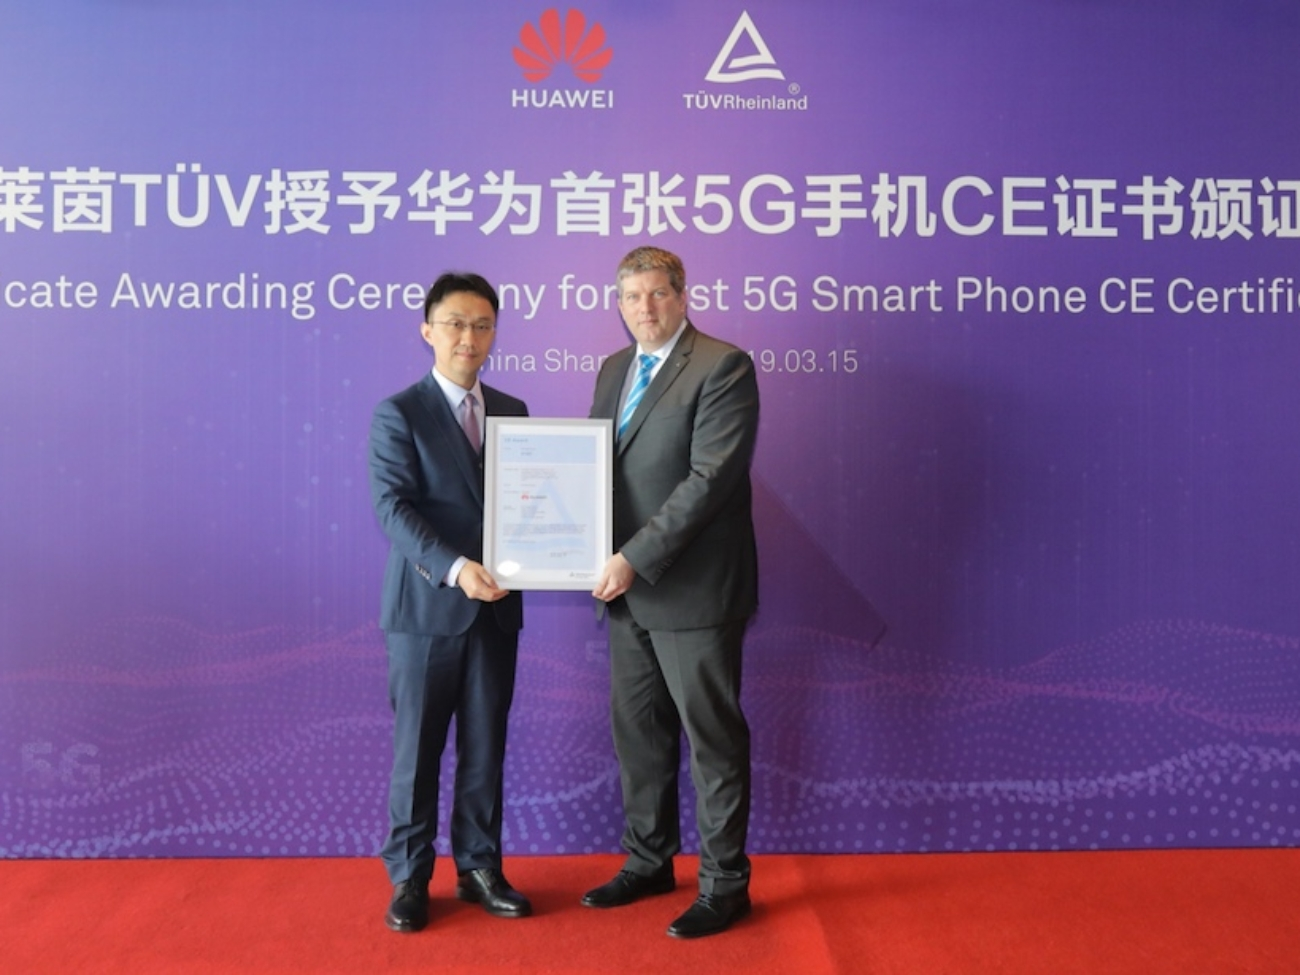 HUAWEI Mate X receives the world's first 5G CE certificate from TÜV Rheinland